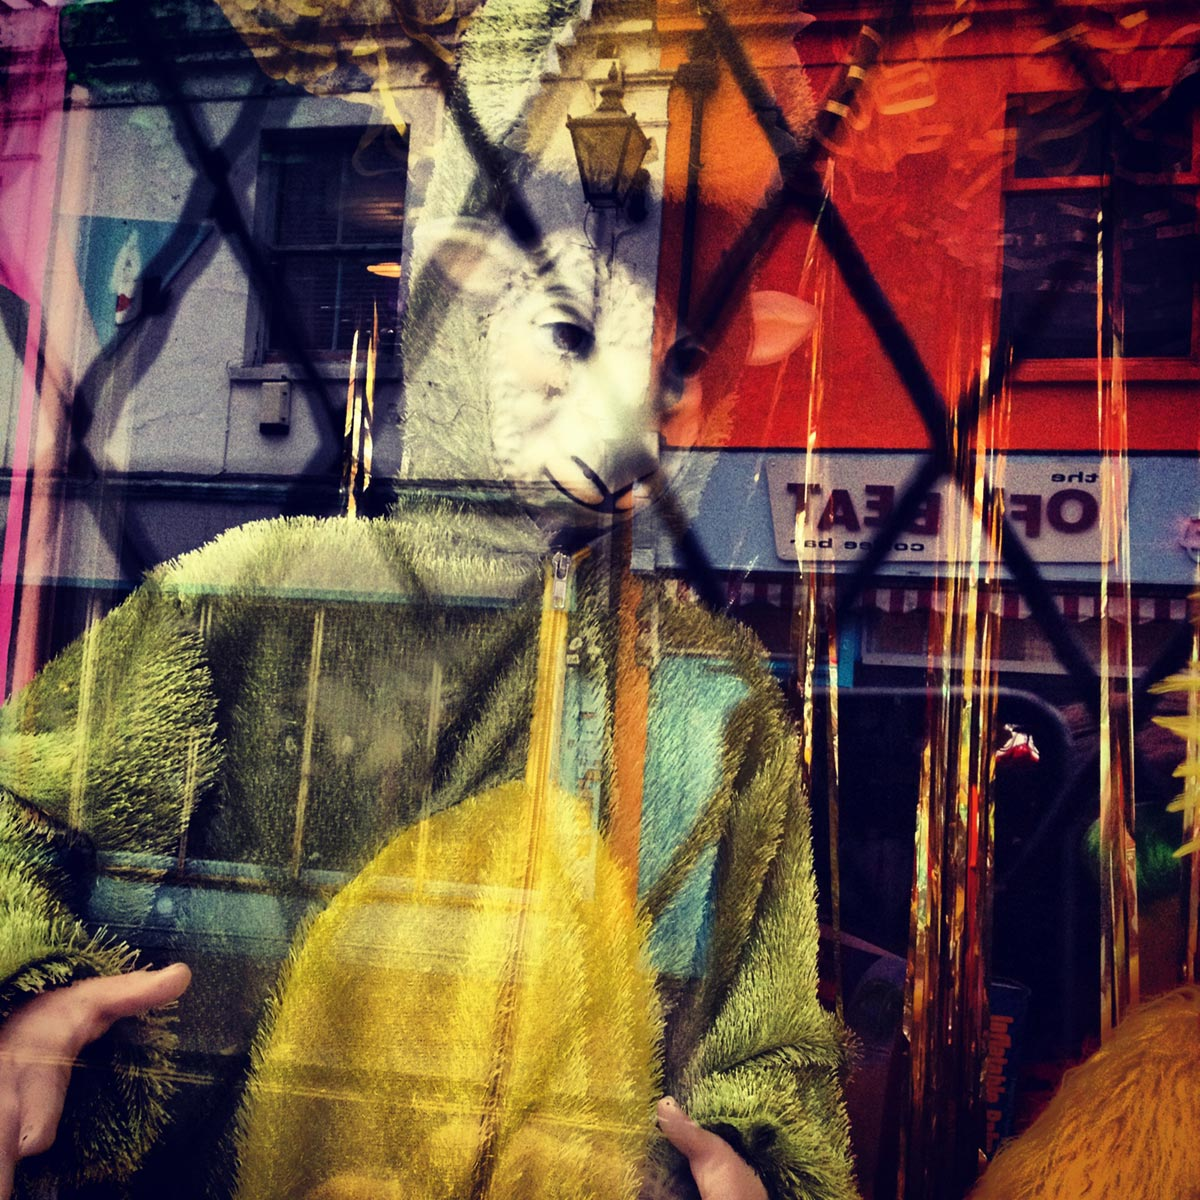 Rondom shop window, North Lanes, Brighton